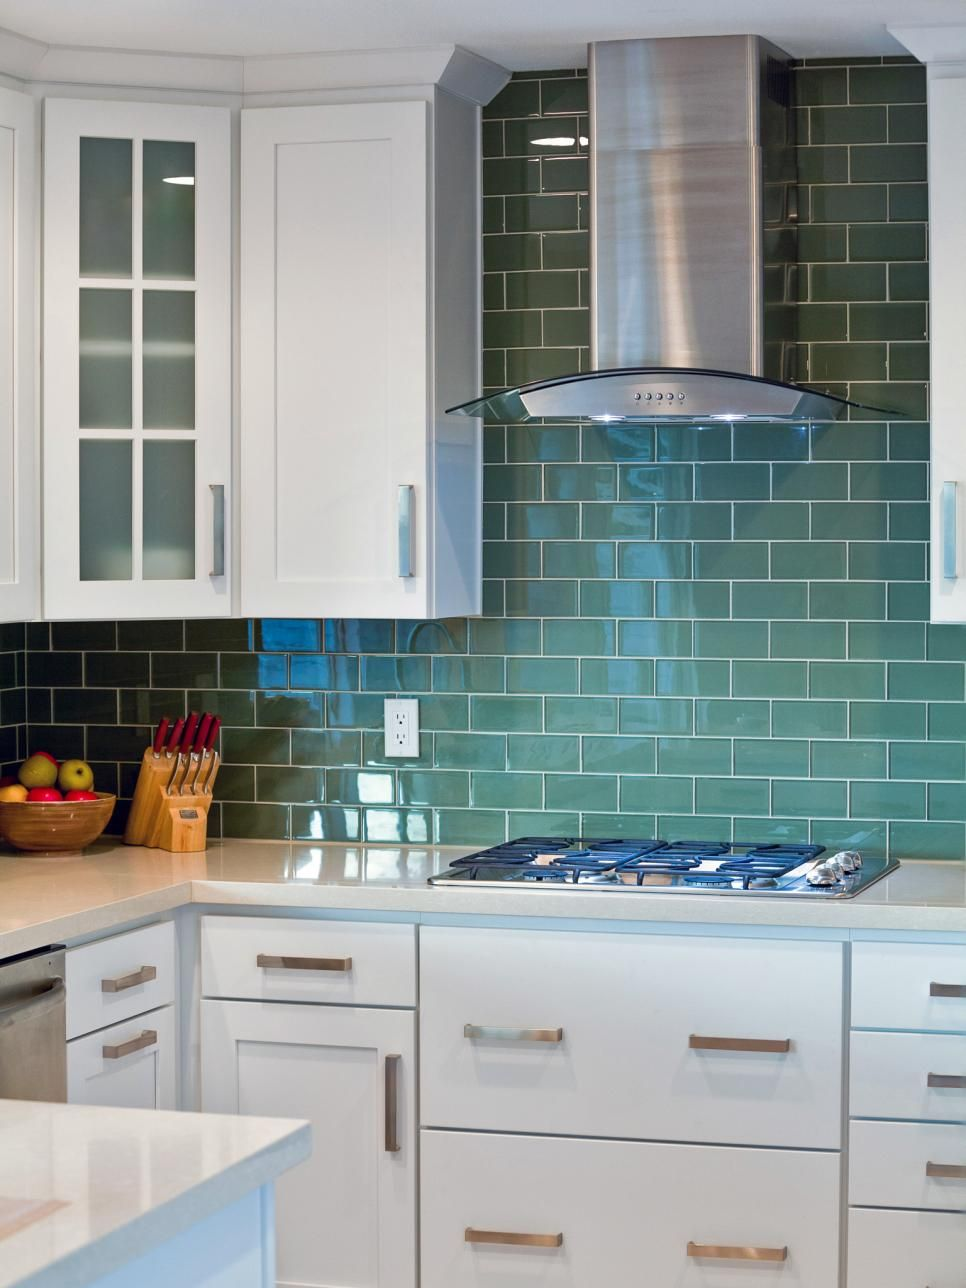 30 Colorful Kitchen Design Ideas From Kitchen Colors Teal